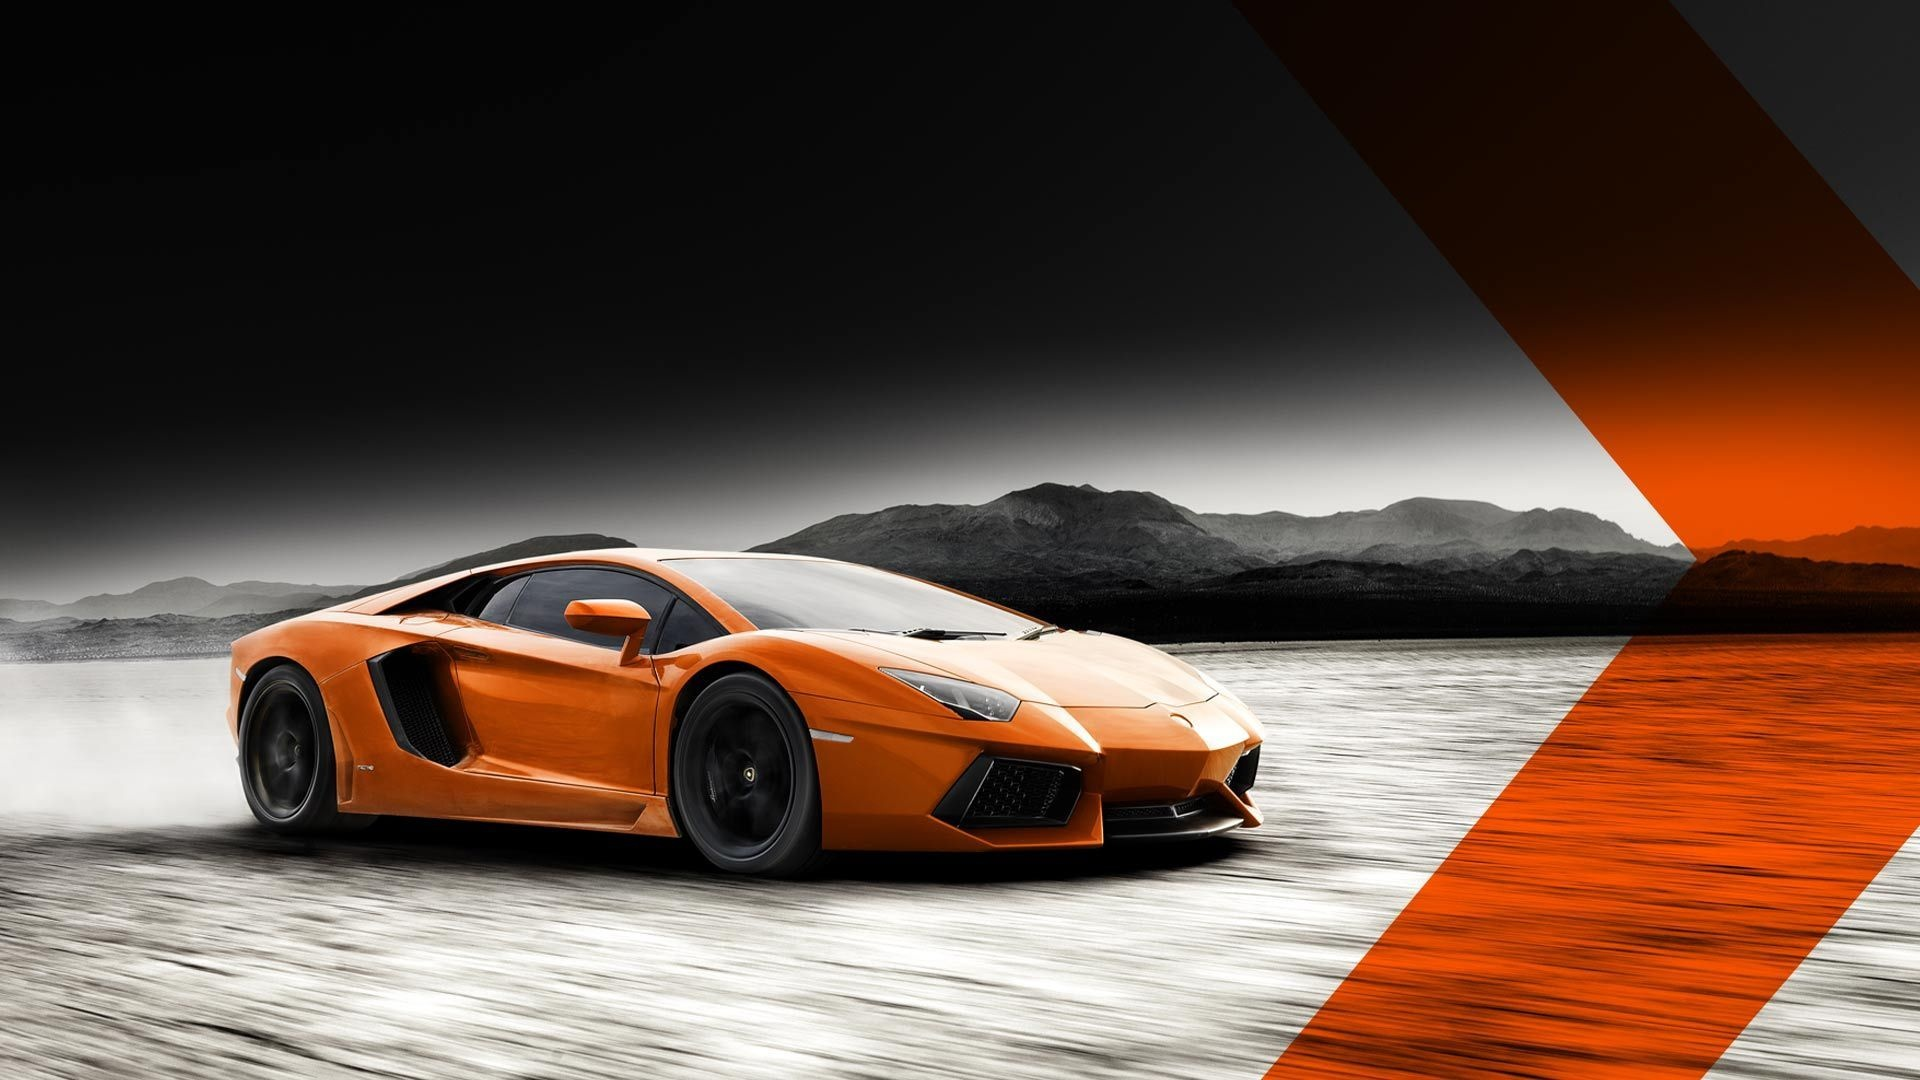 Wallpaper Lamborghini Aventador Lp700 4 Orange Color Supercar